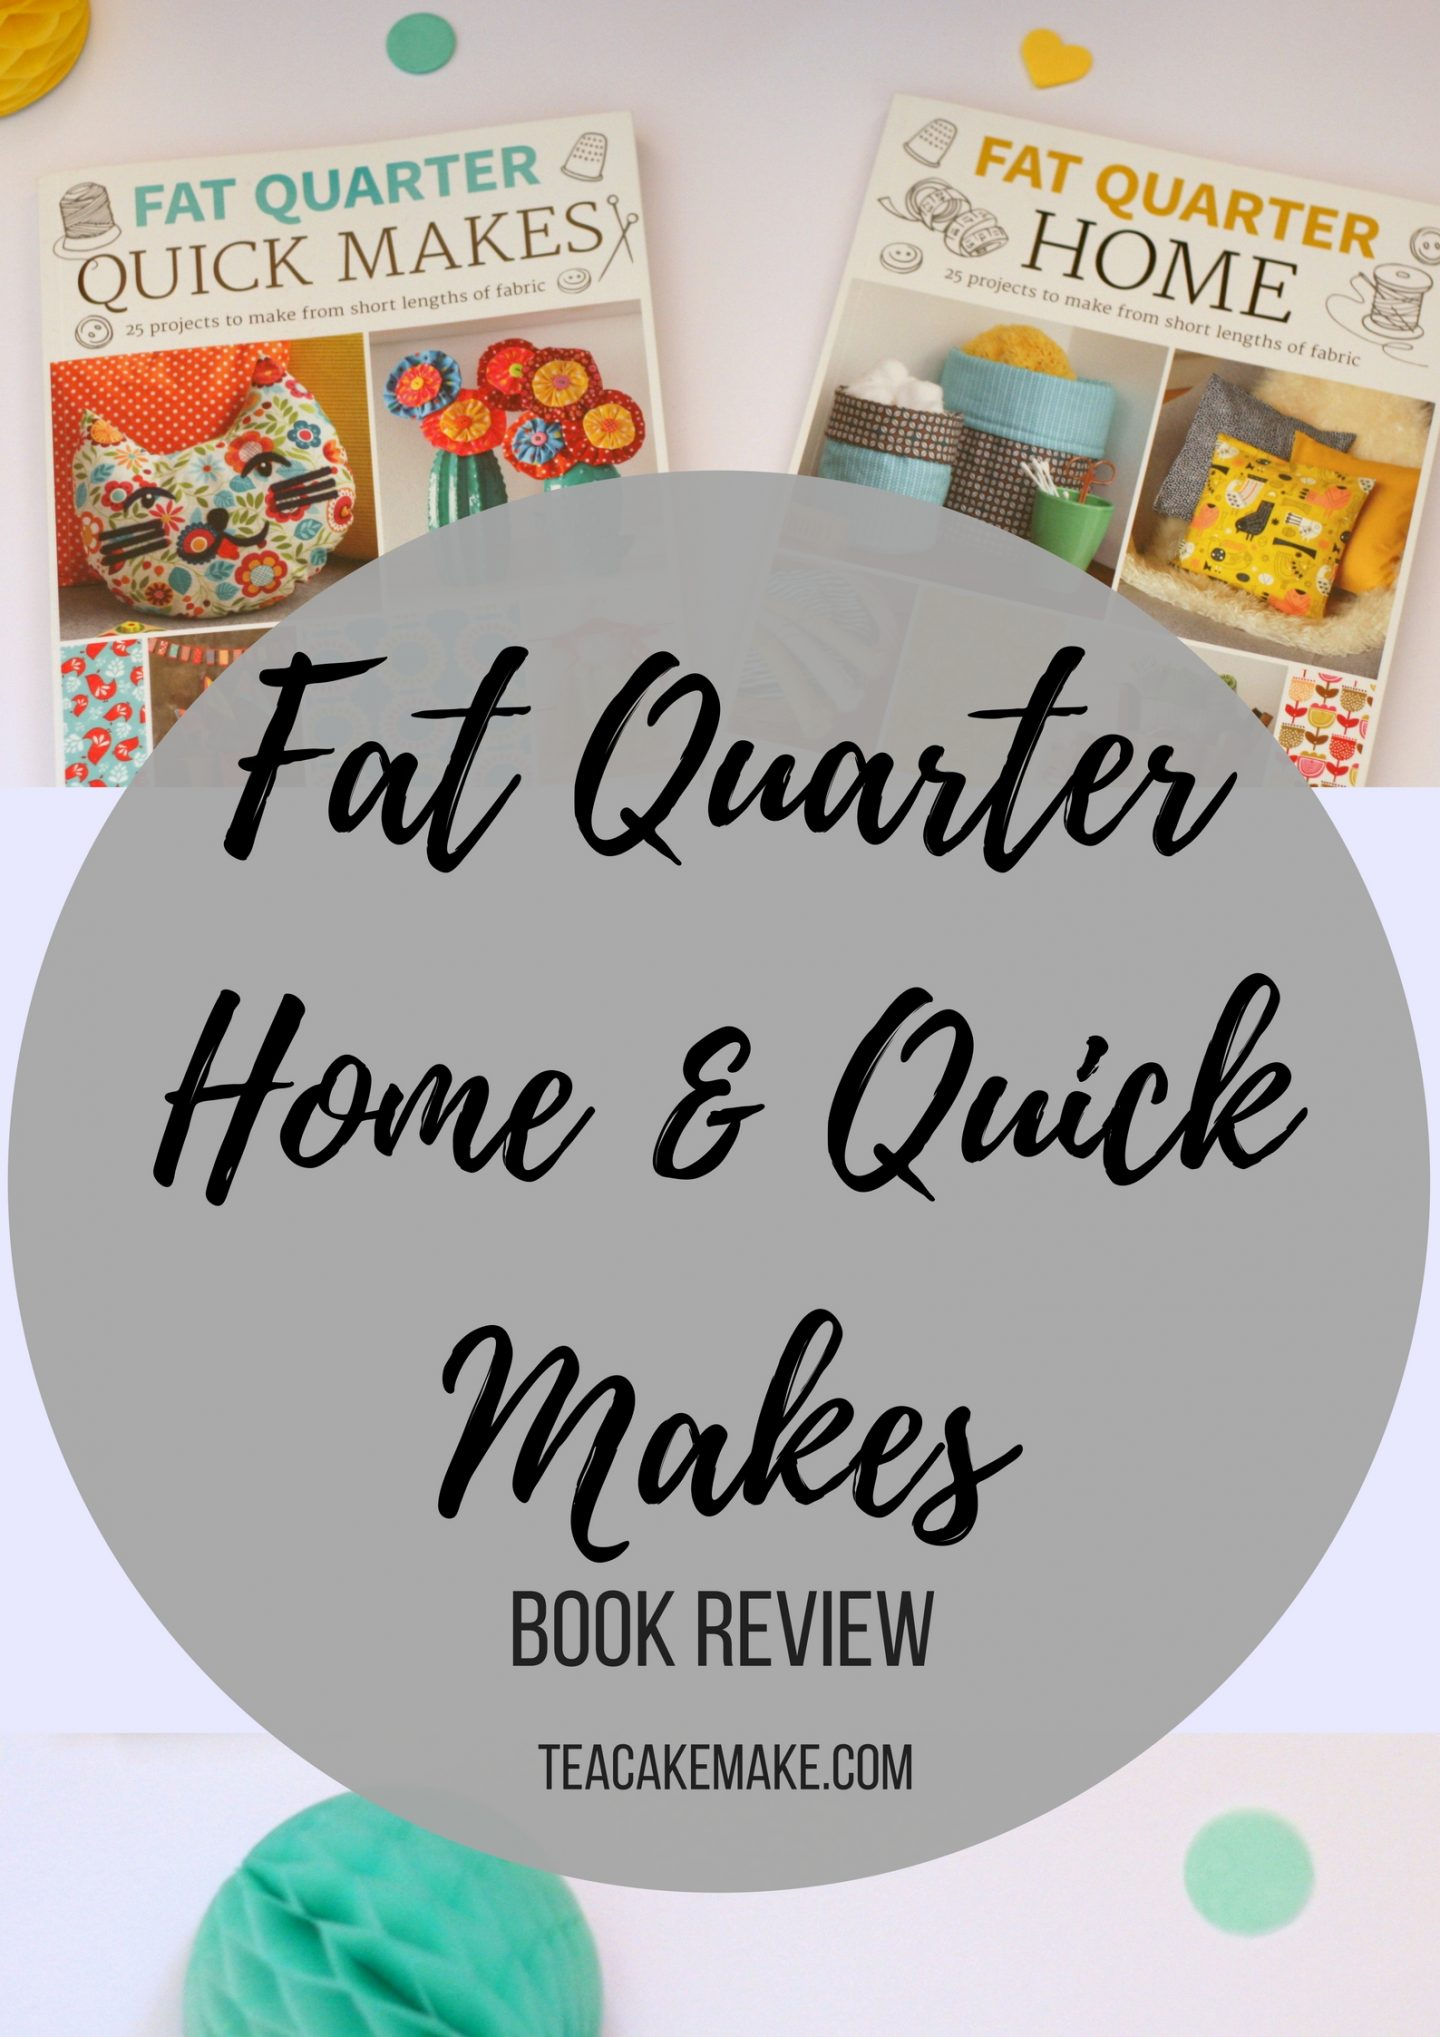 Fat quarter home quick makes review